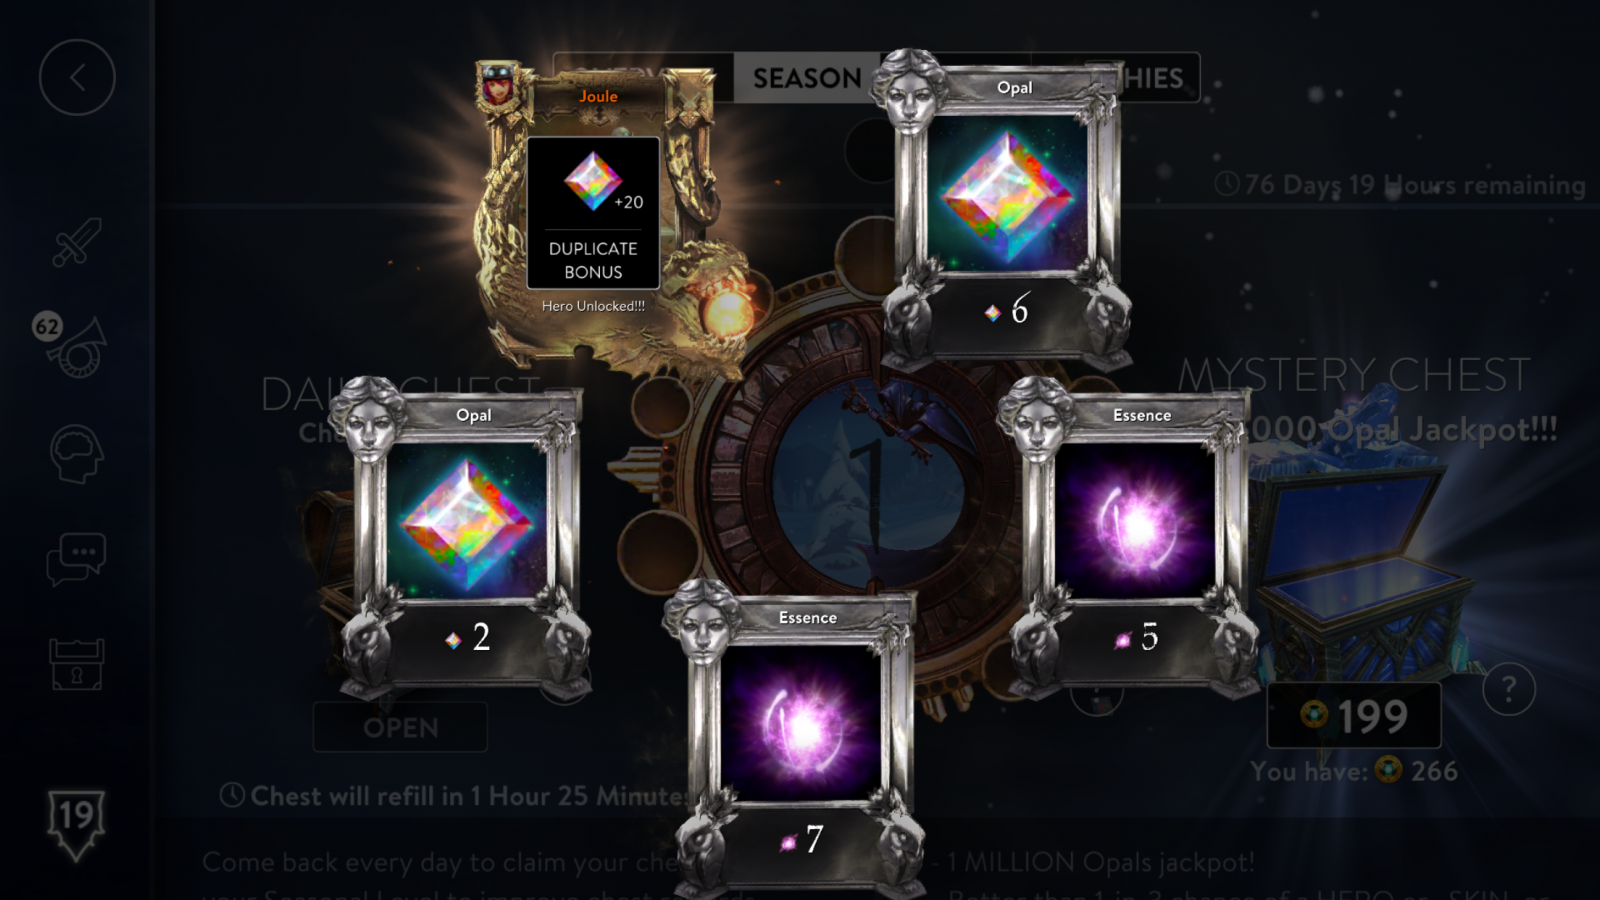 First 2.0 Mystery Chest roll 4